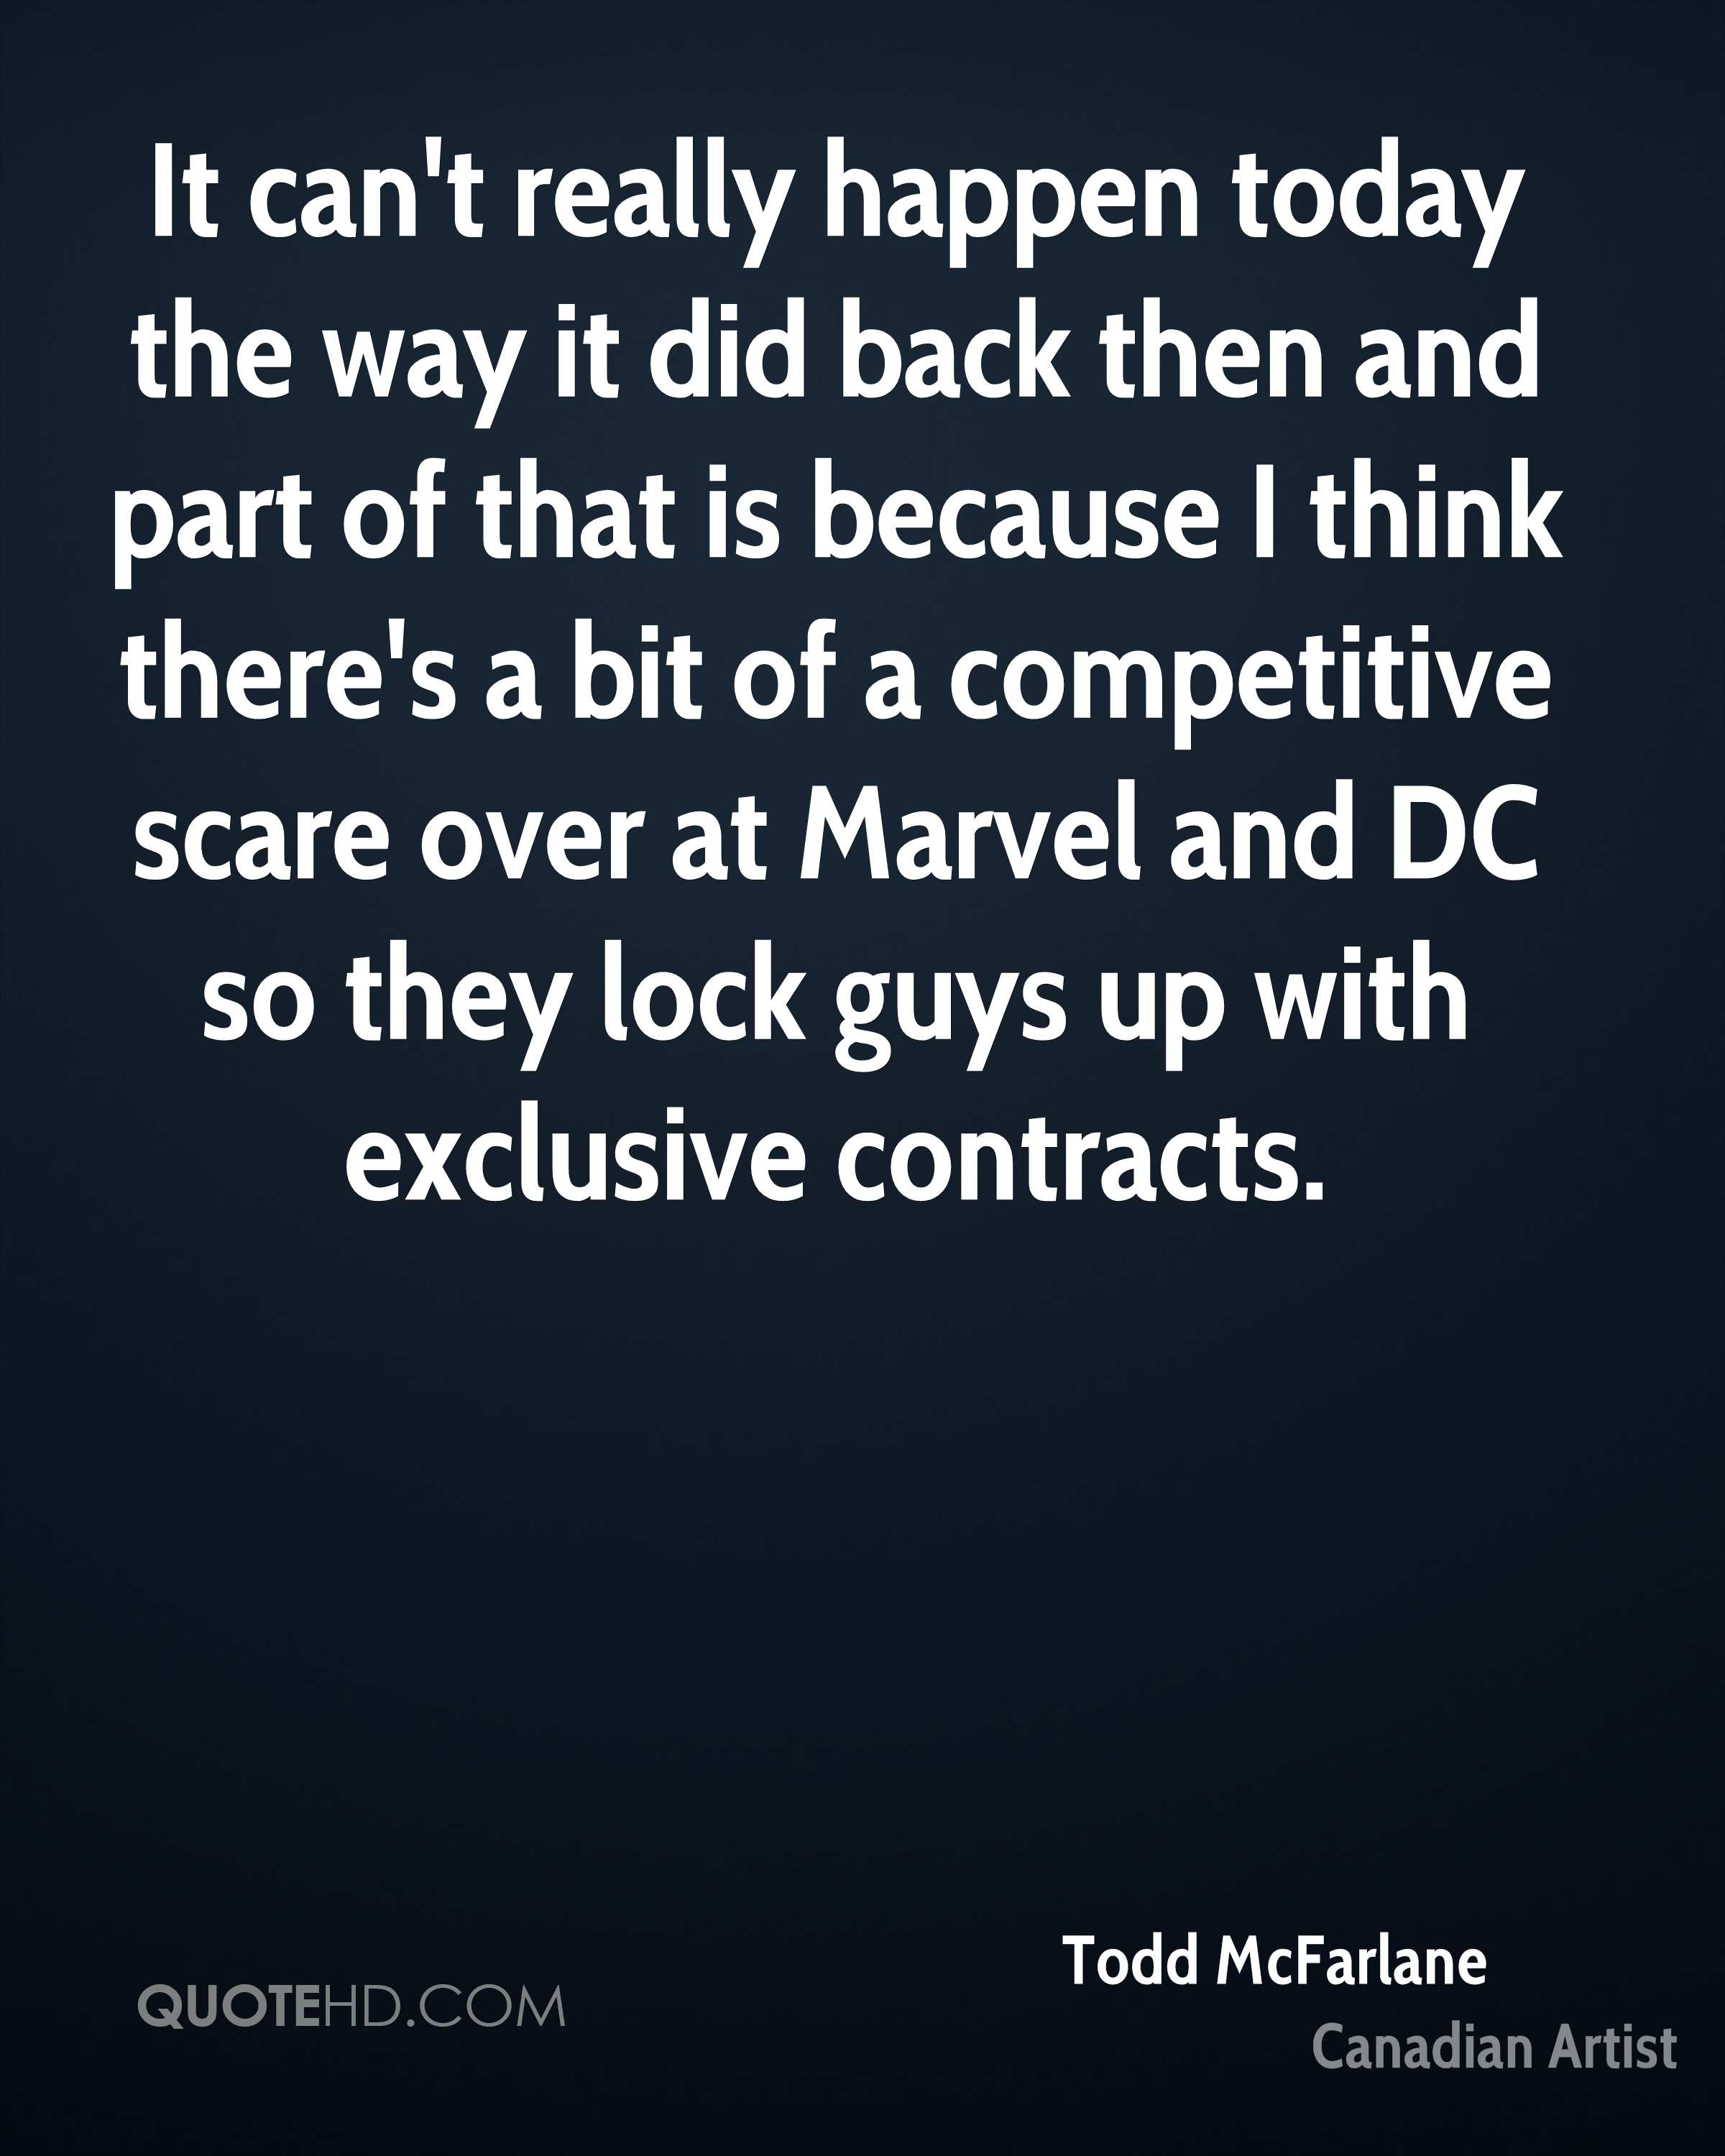 It can't really happen today the way it did back then and part of that is because I think there's a bit of a competitive scare over at Marvel and DC so they lock guys up with exclusive contracts.